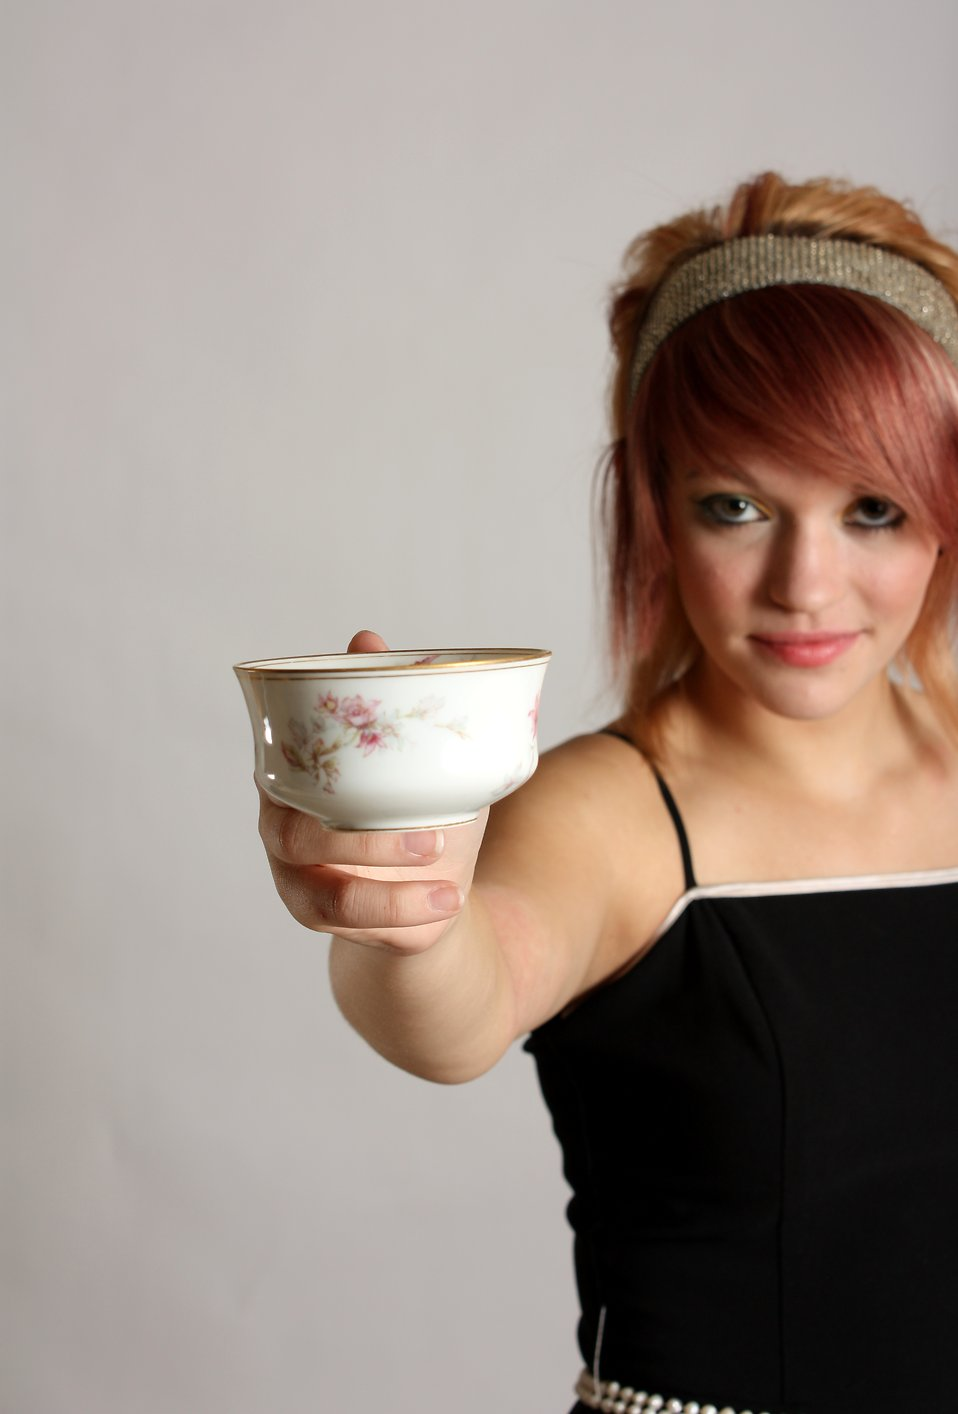 A beautiful young woman holding a tea cup : Free Stock Photo